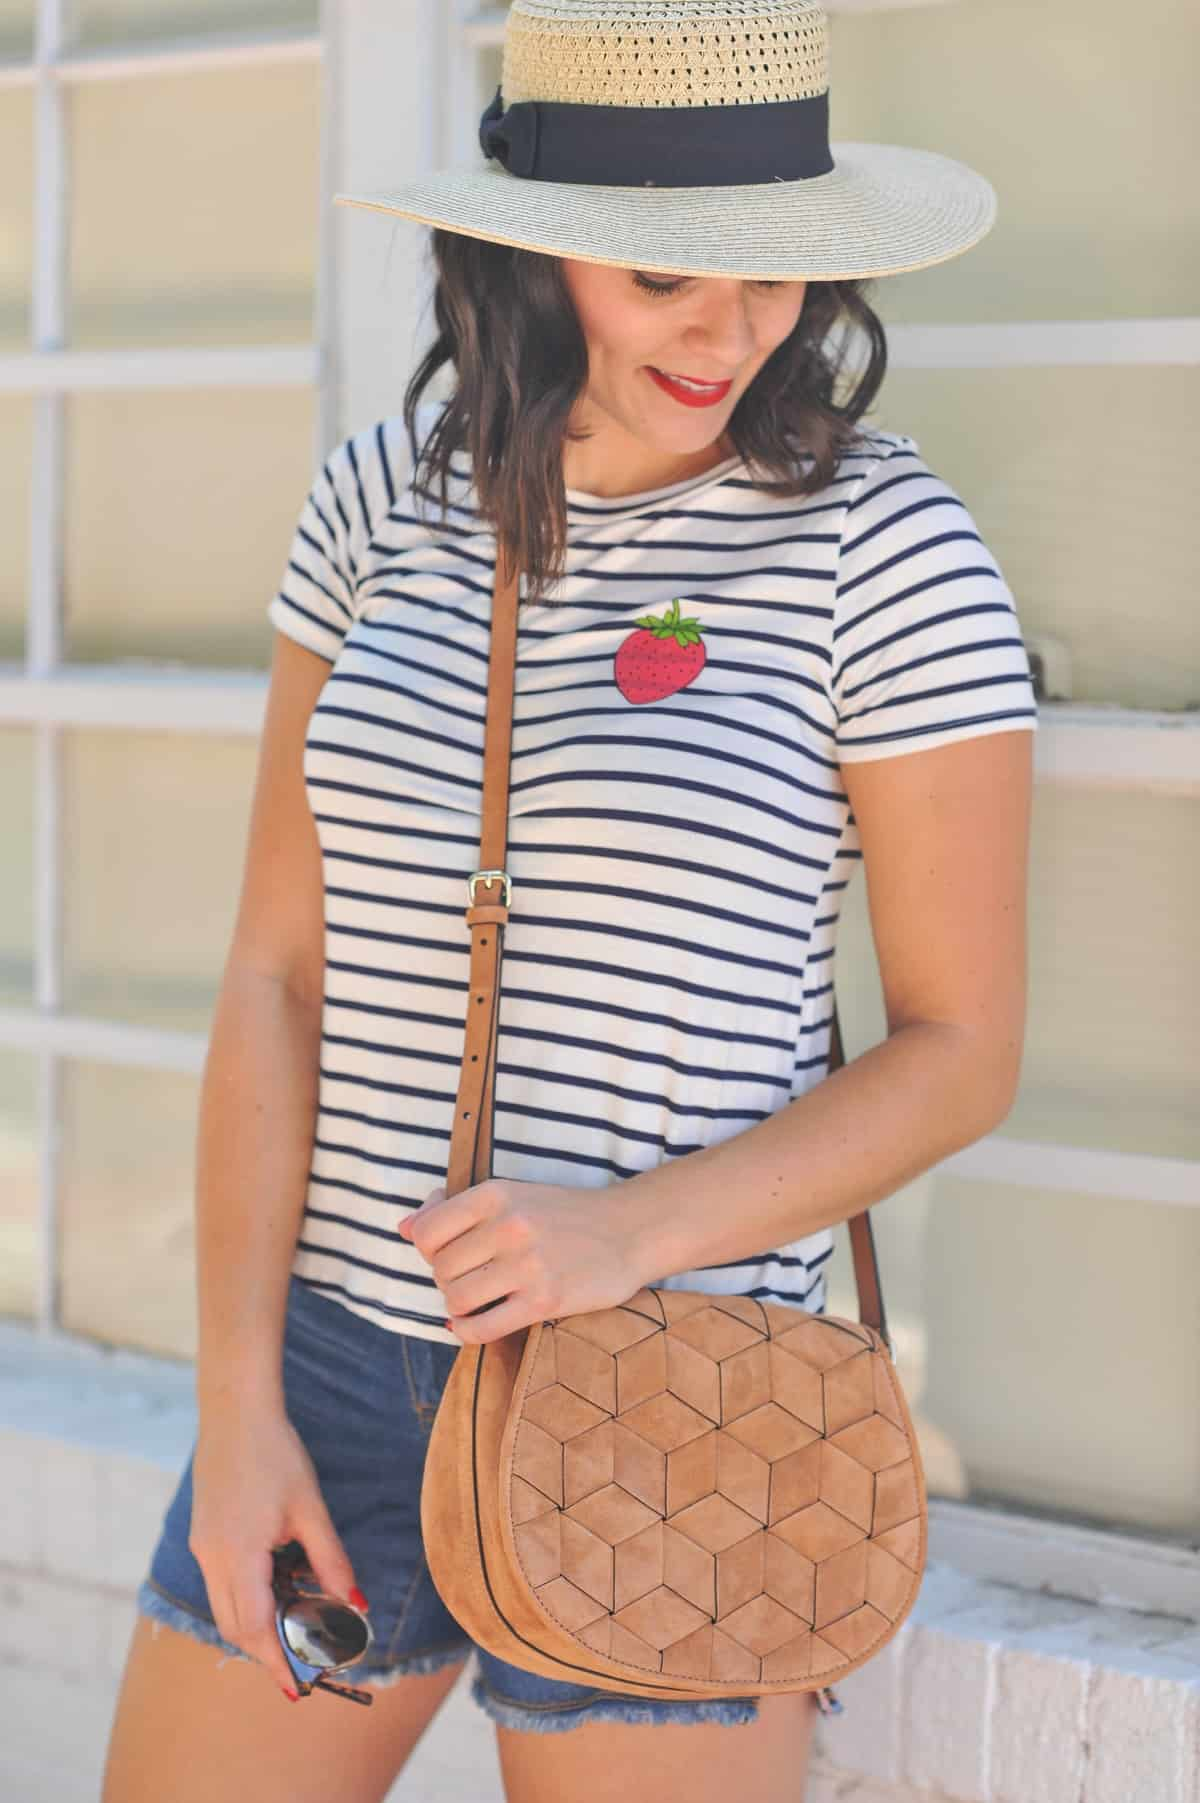 4th of july outfit ideas, striped tee outfits - @mystylevita - 9